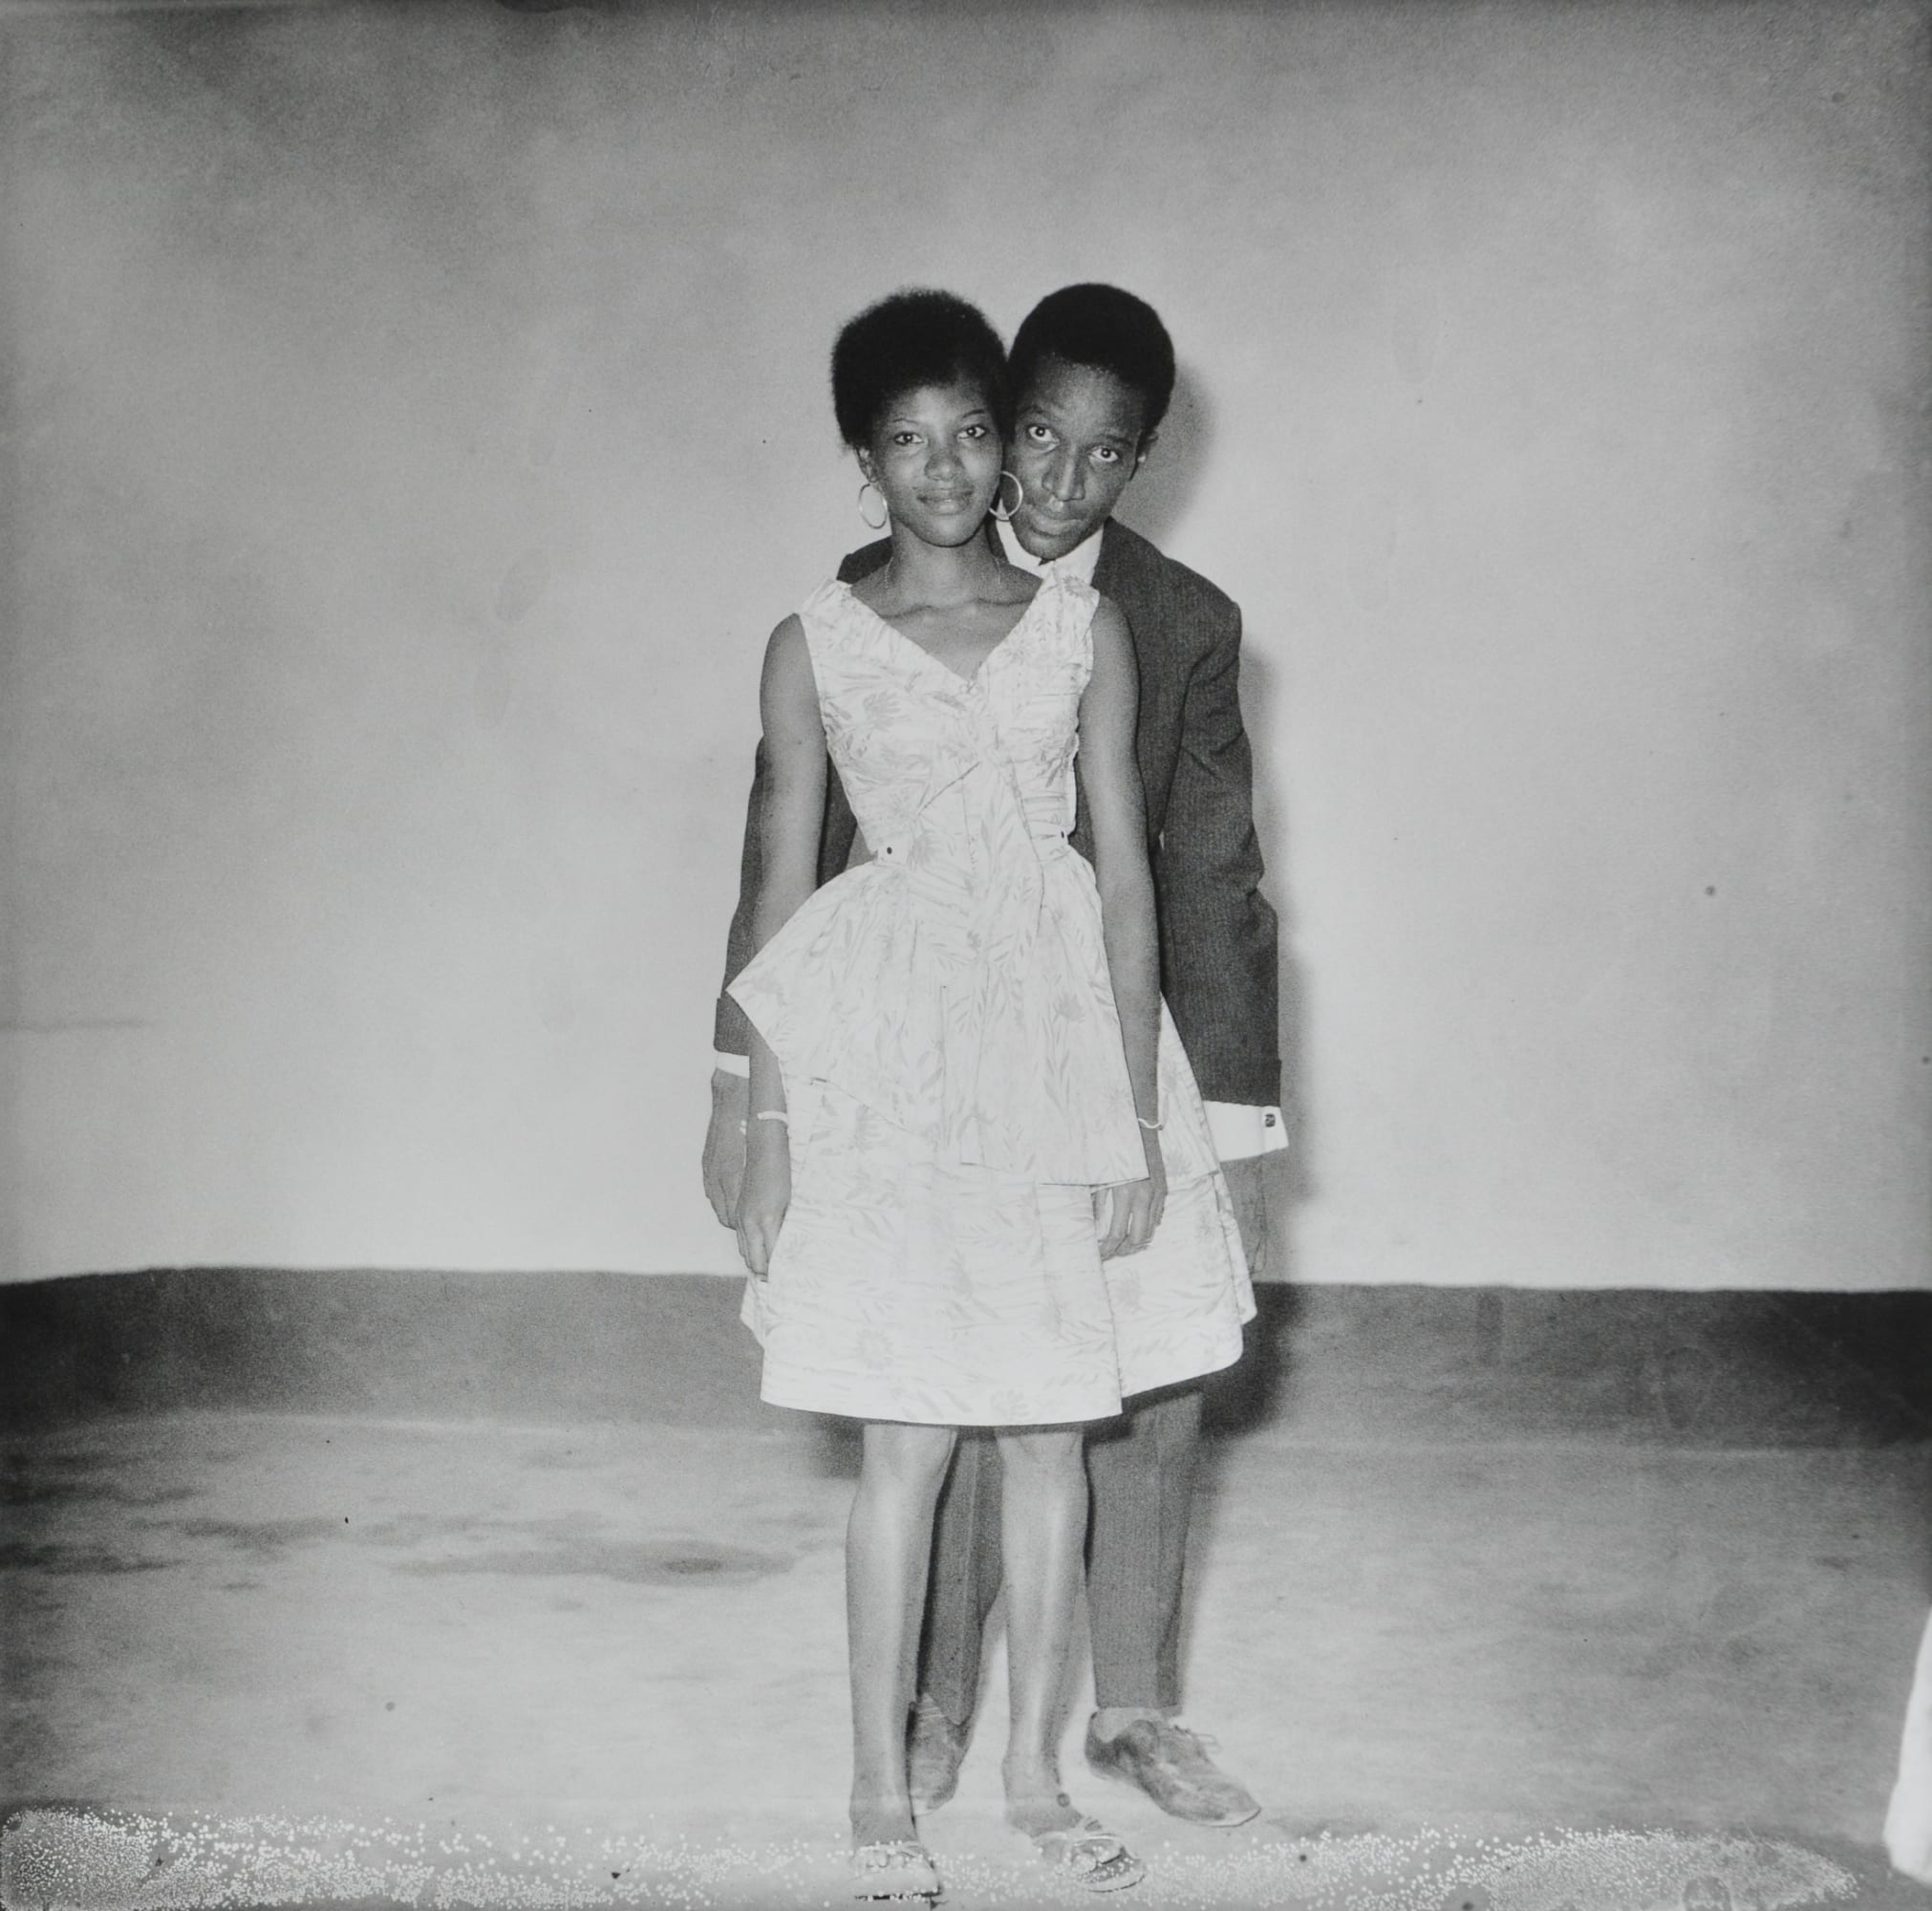 Malick Sidibé - The Arrival of Sacko Abdoulaye, 1967